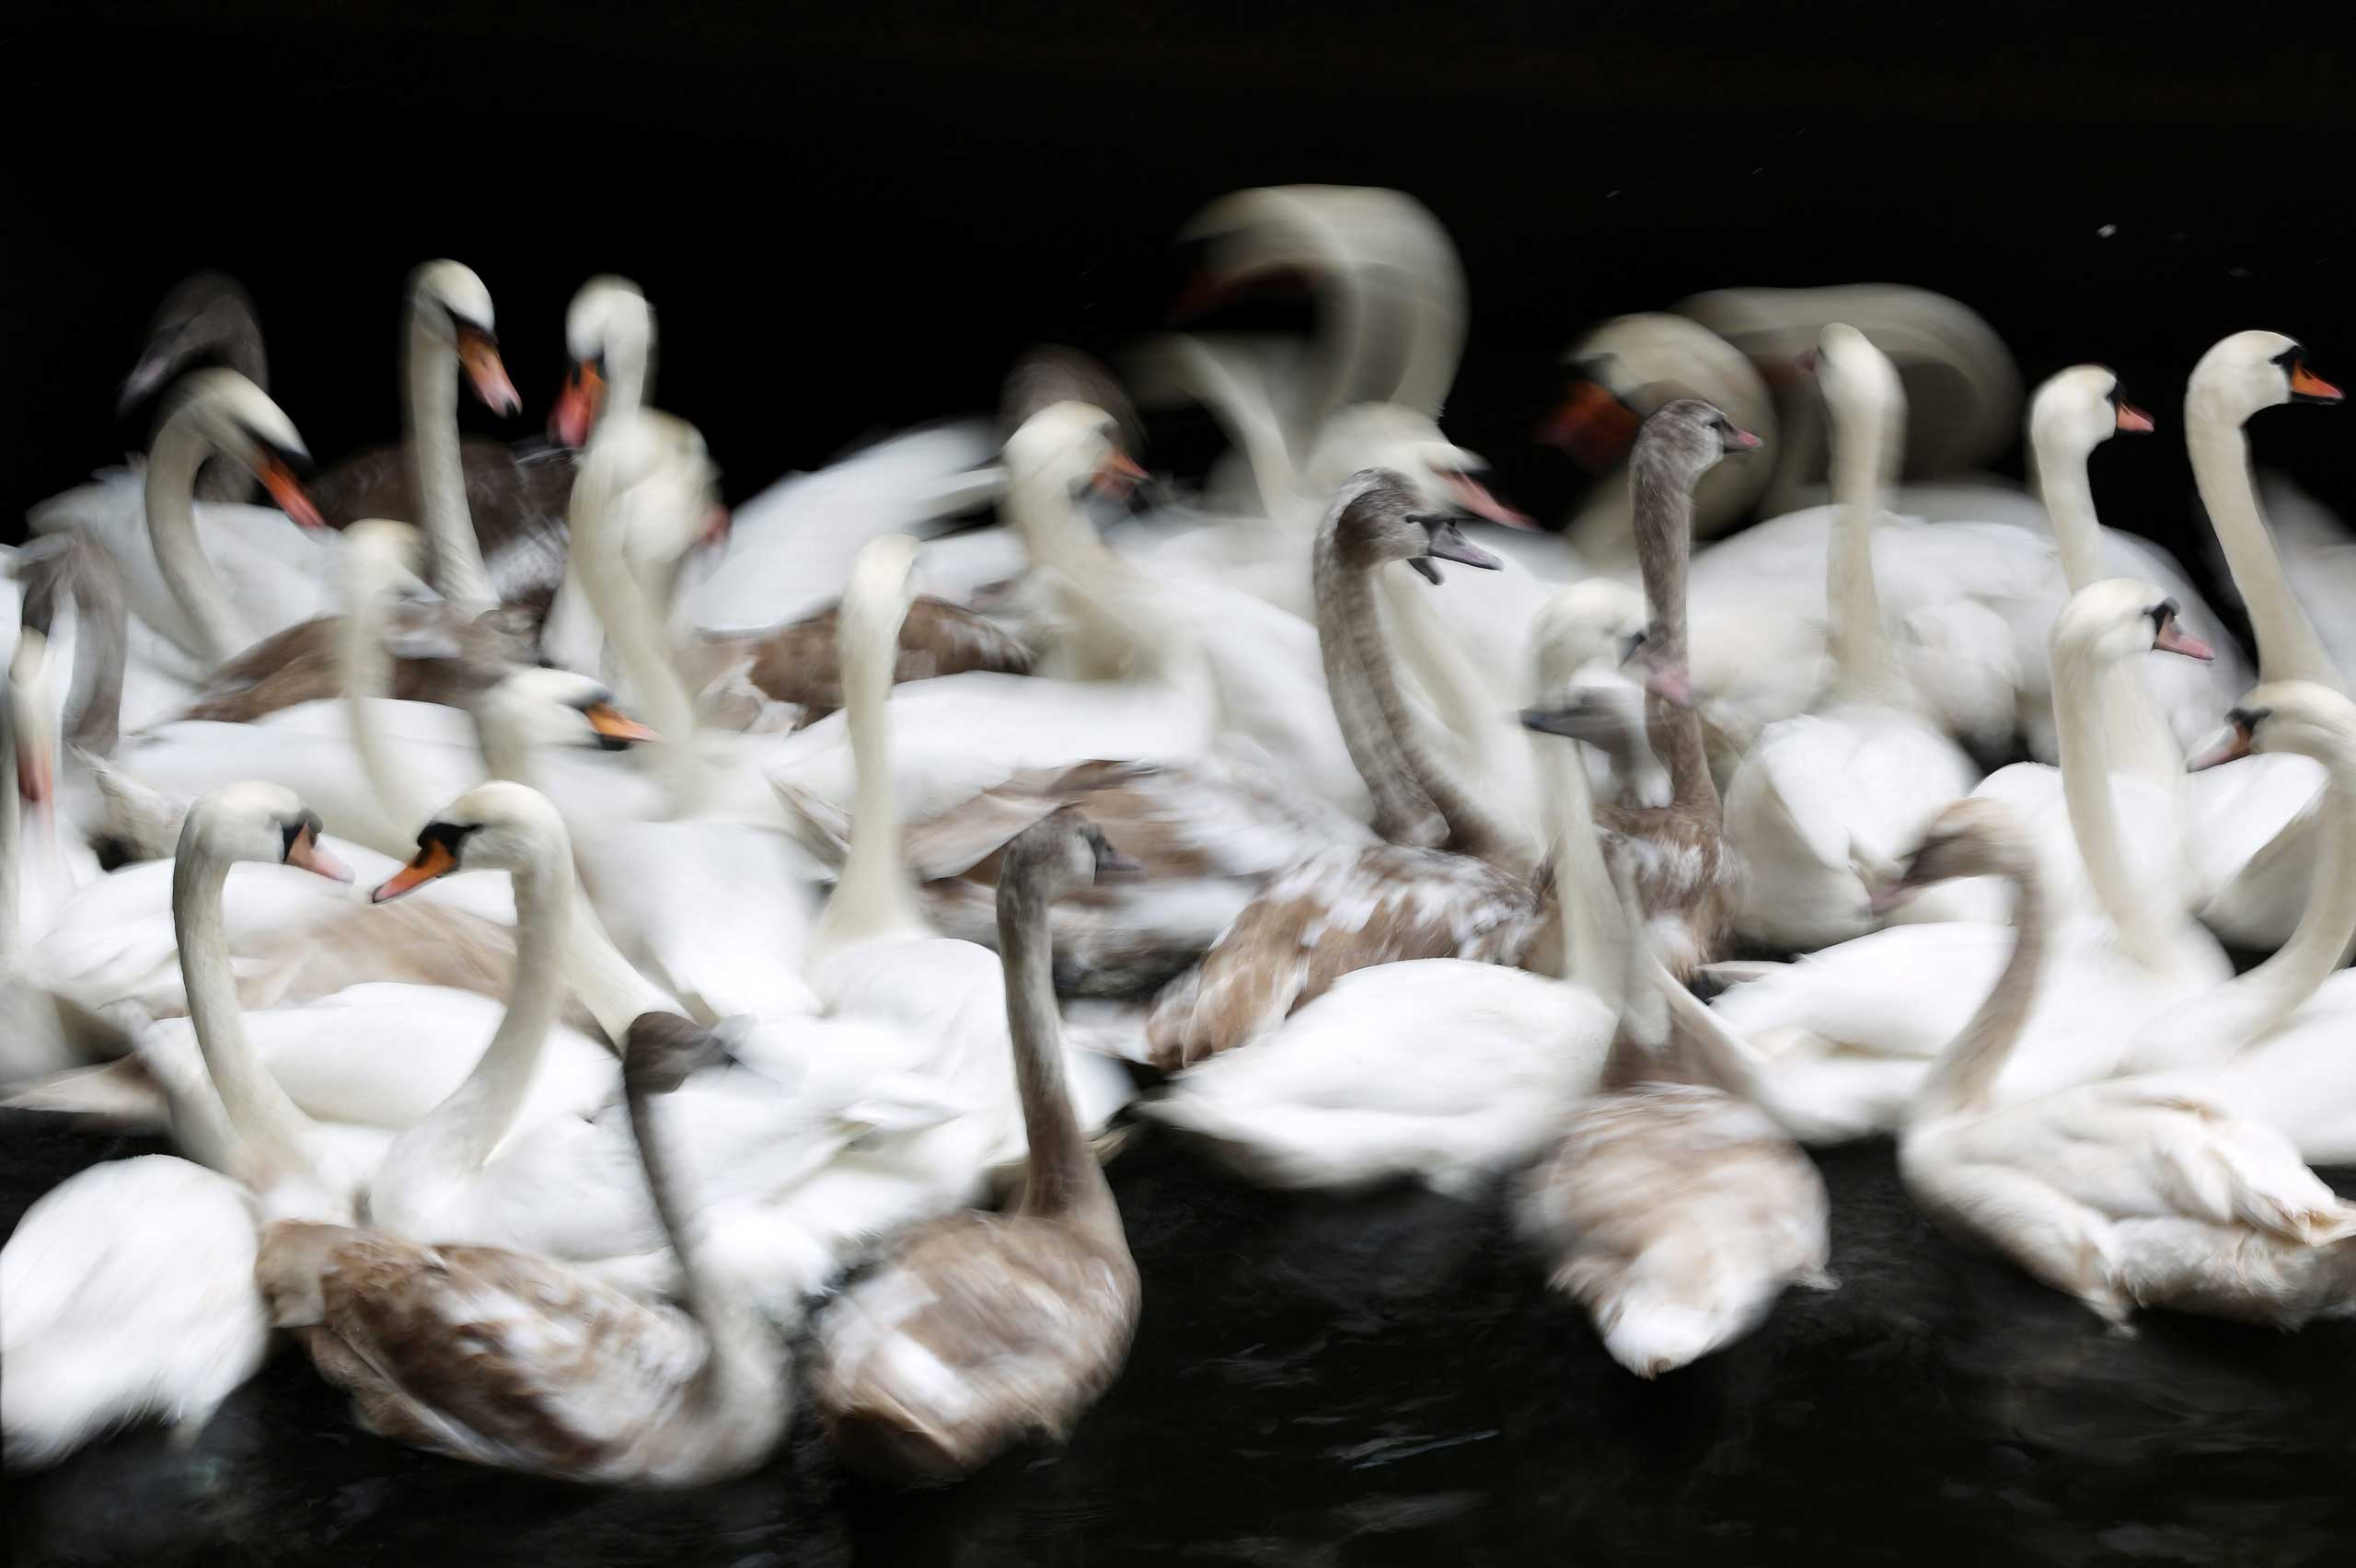 Nov. 18, 2014. Swans are gathered on the Alster Lake at City Hall in Hamburg before being transported to Eppendorf Muehlenteich pond where they will spend the Winter.